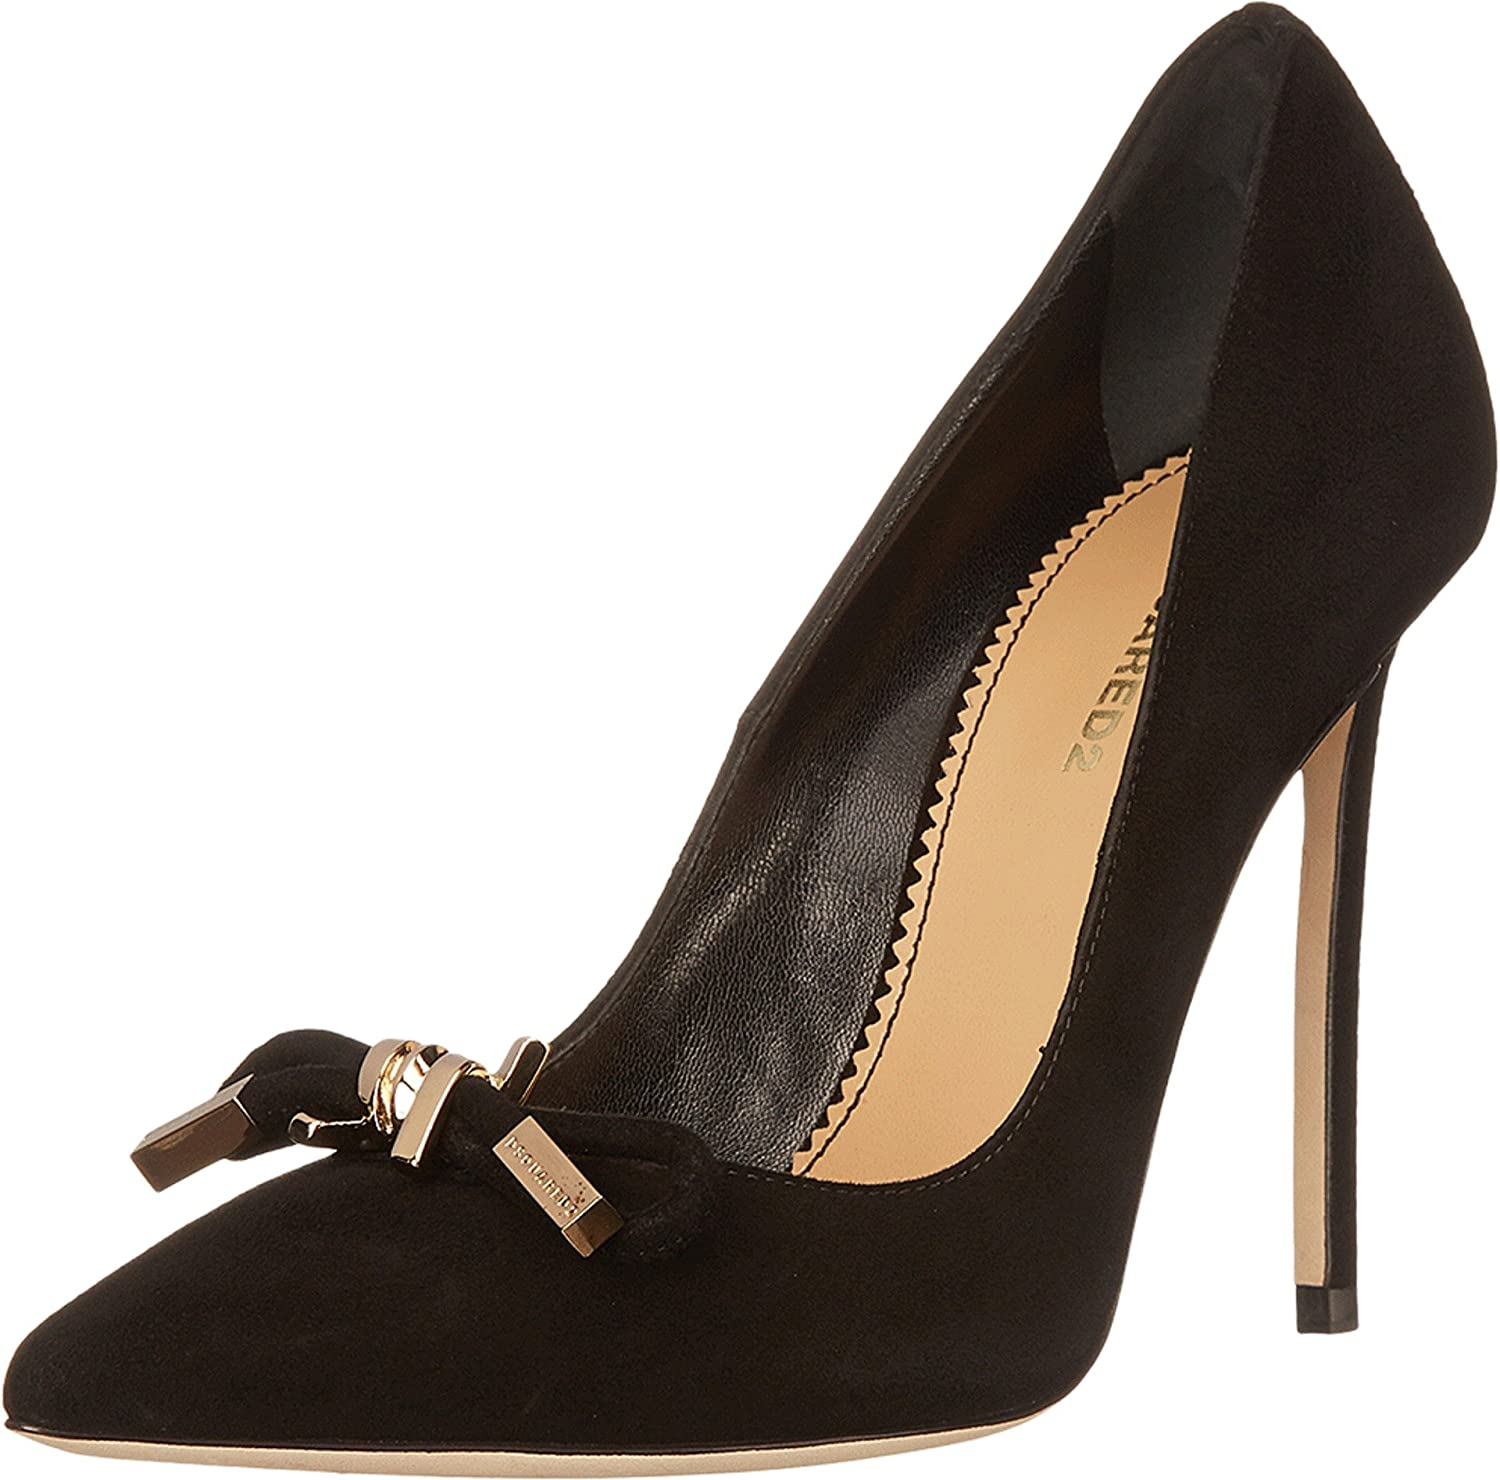 DSQUARED2 Womens W15a509